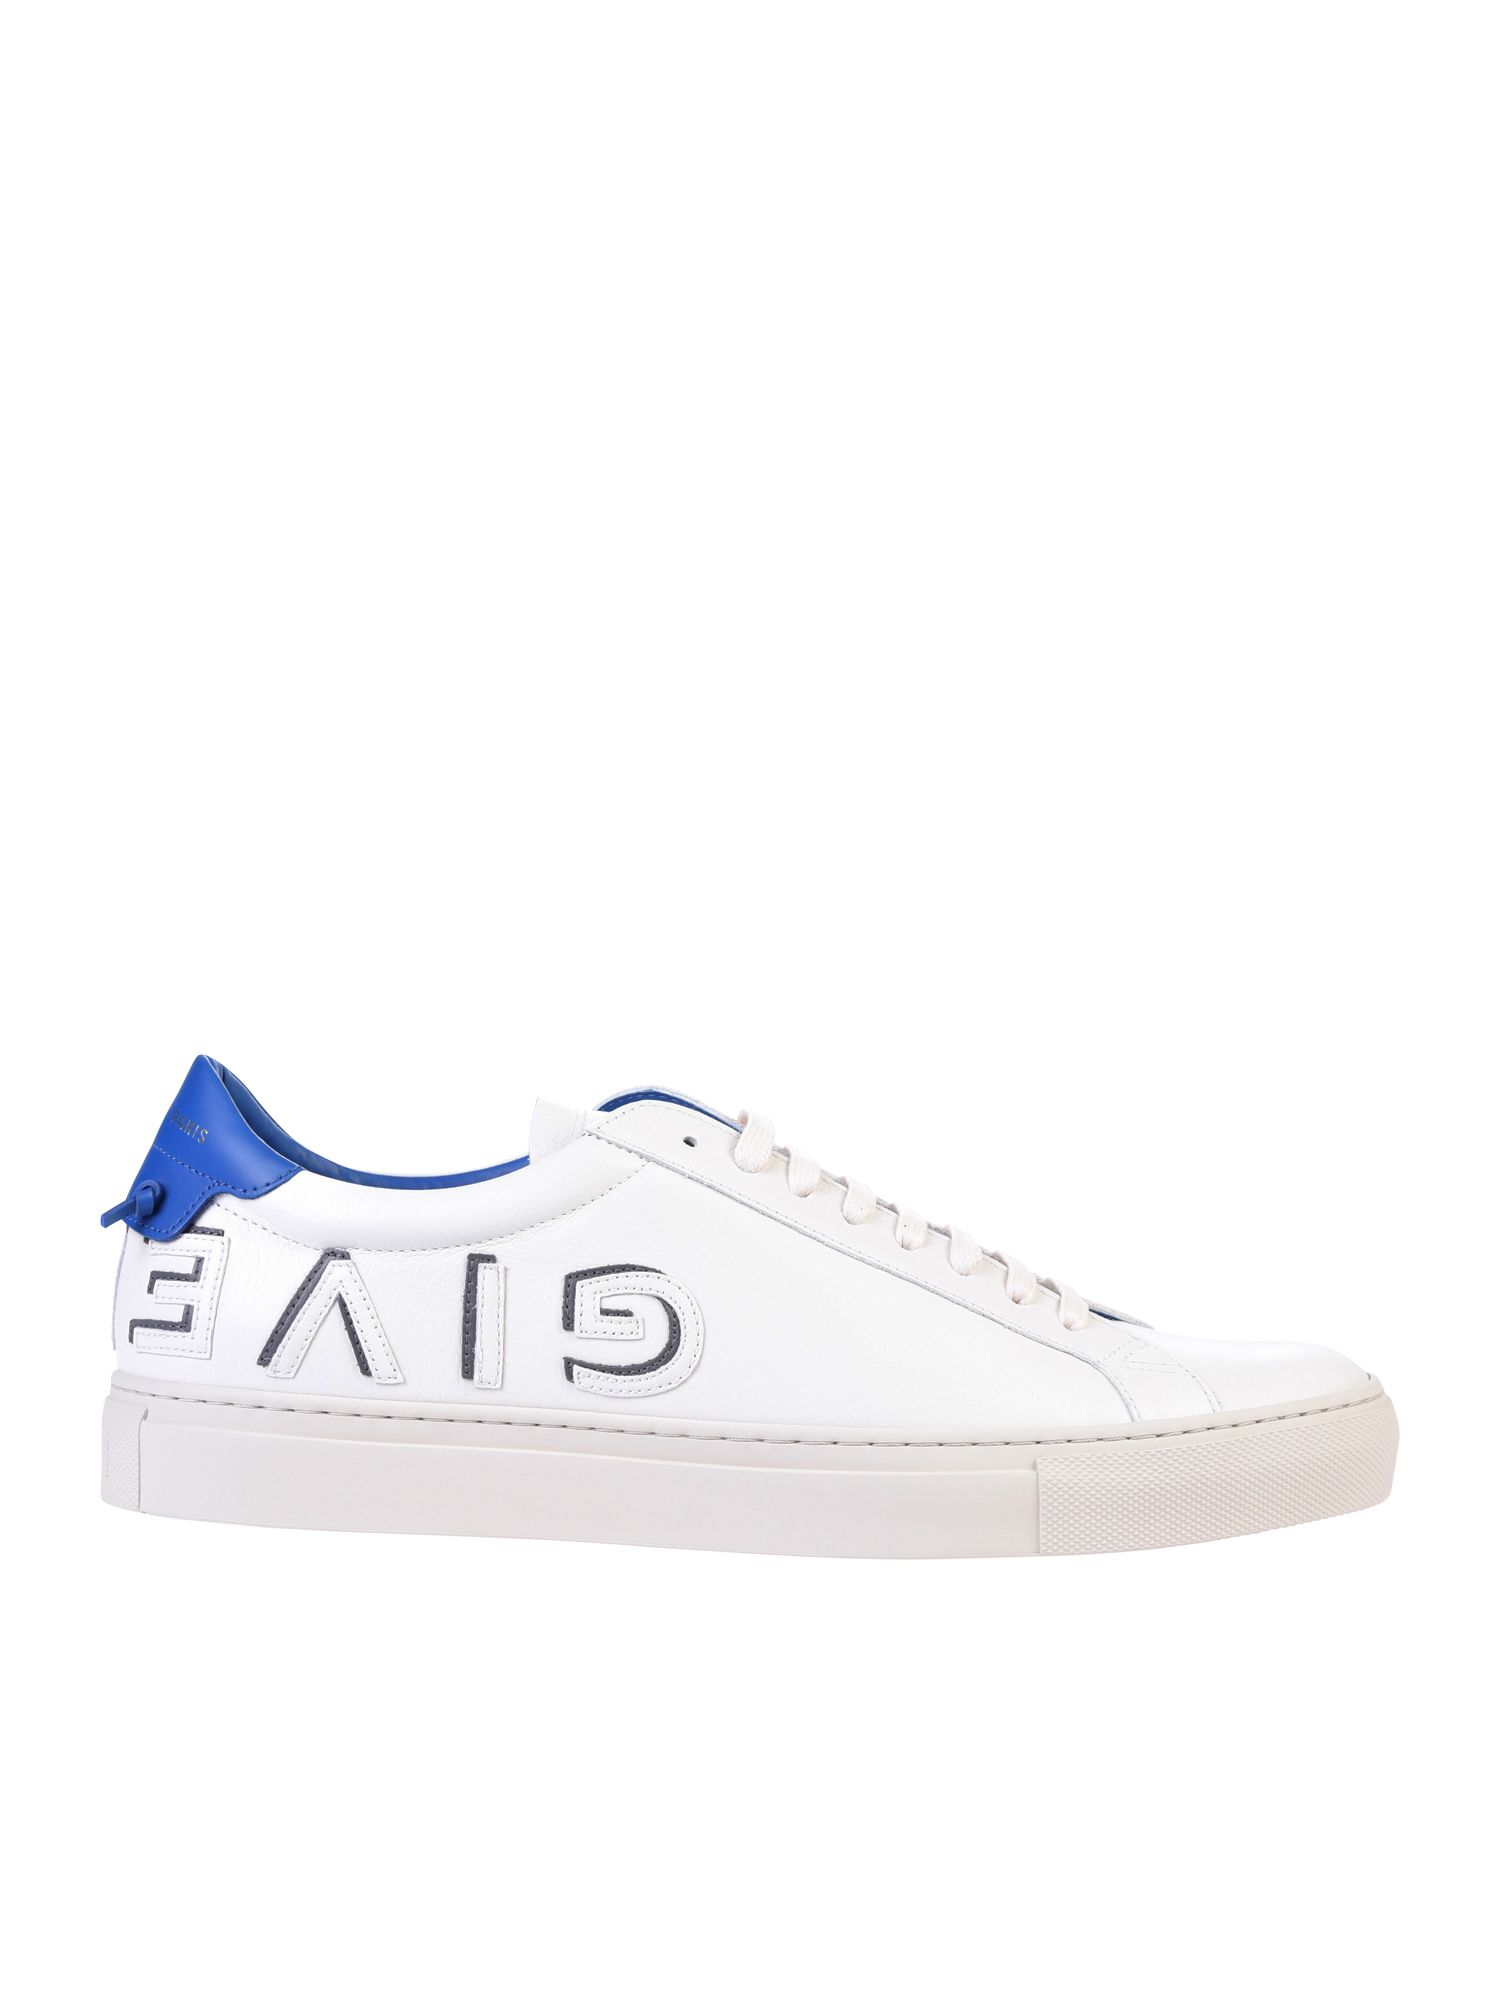 GIVENCHY LOGO PATCH LEATHER SNEAKERS